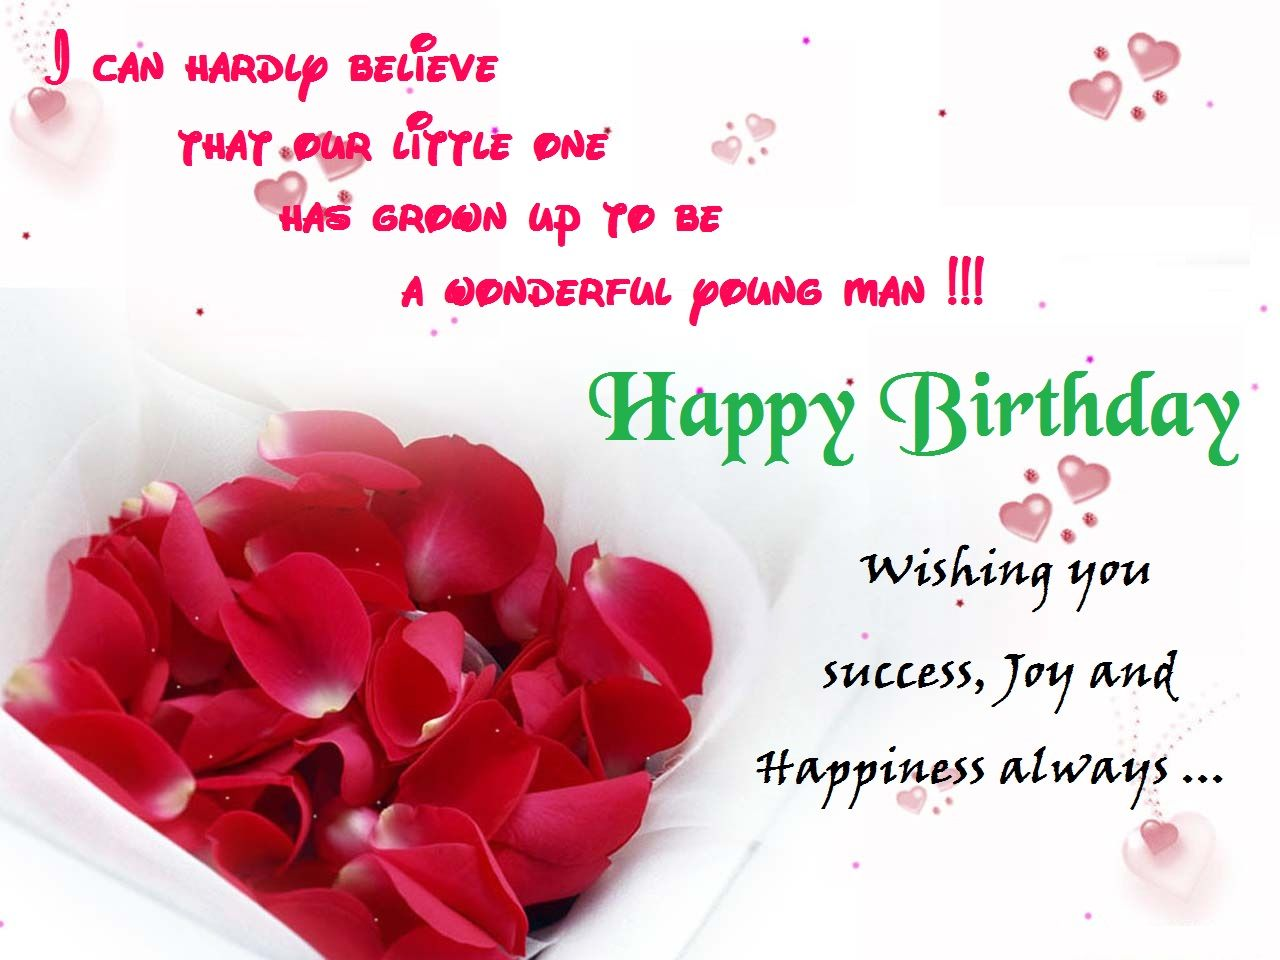 You Are Everything To Me Wallpapers In Jpg Format For Free Download Happy Birthday Wishes Messages Birthday Wishes And Images Birthday Wishes For Wife